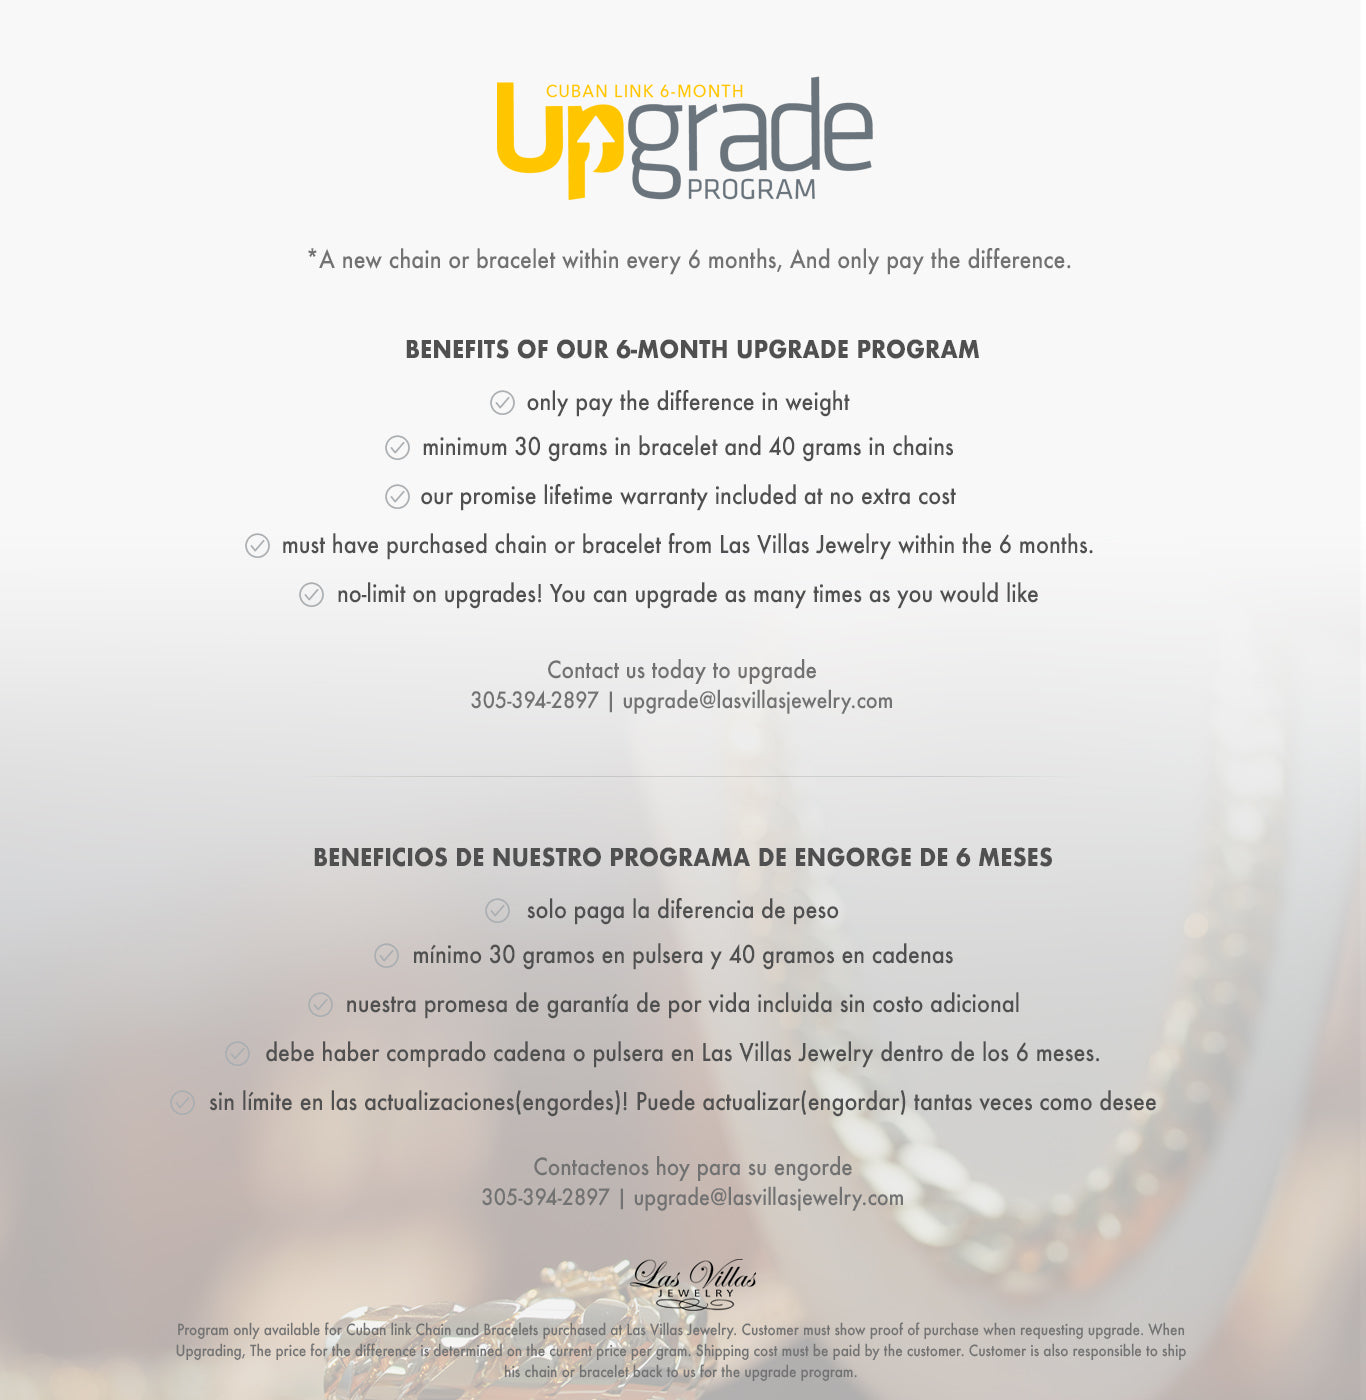 Cuban Link 6 Months Upgrade Program